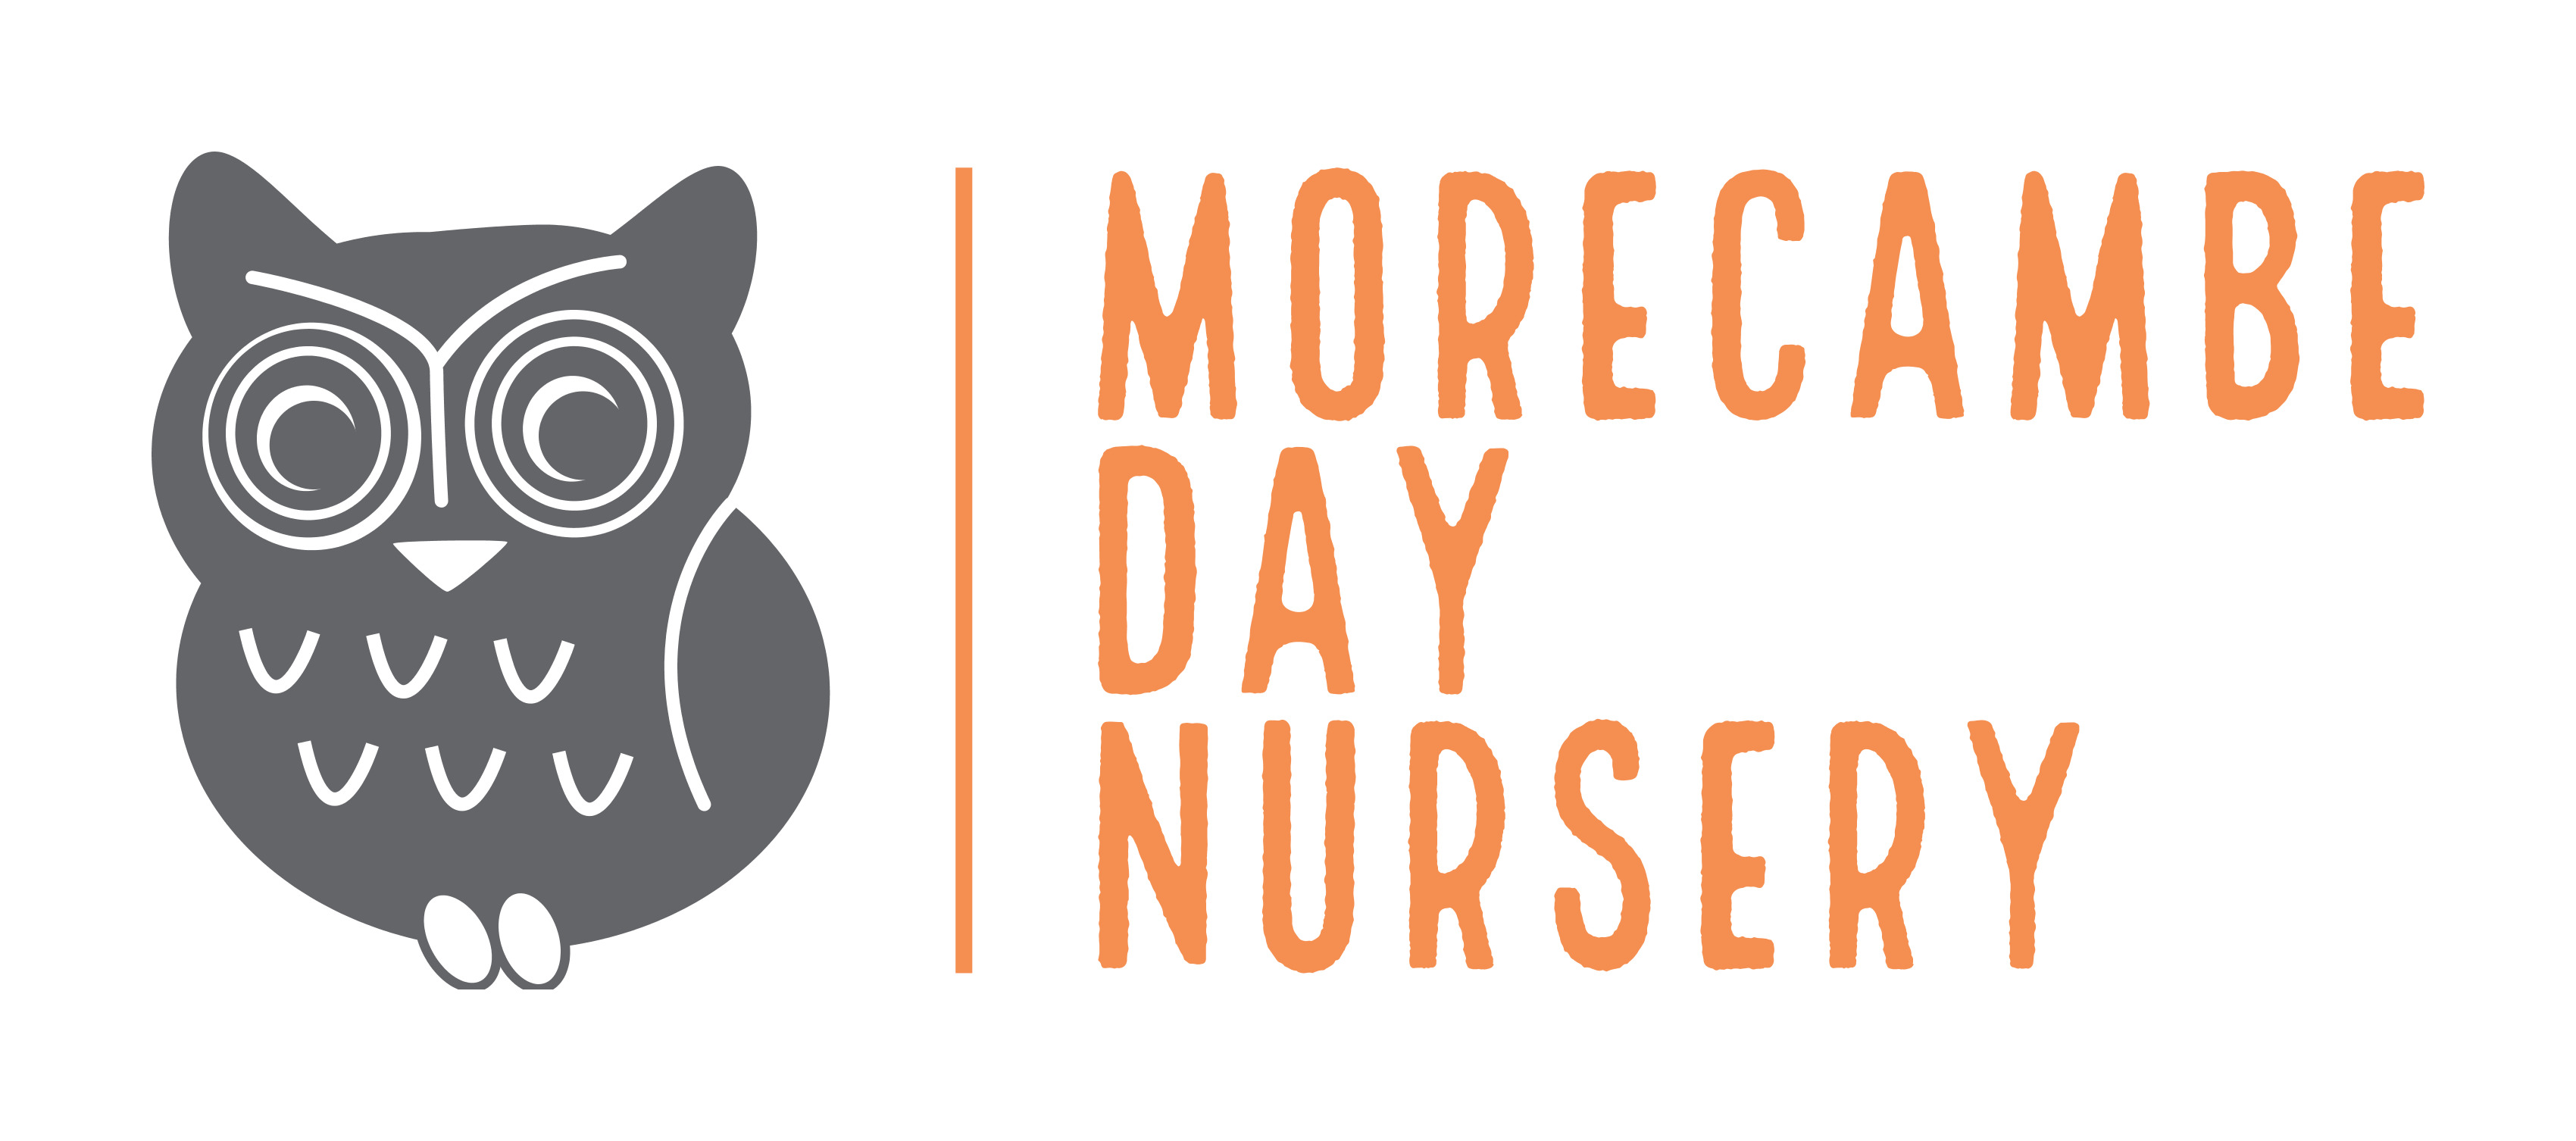 Morecambe Day Nursery - Morecambe, Lancashire LA4 5HT - 01524 415223 | ShowMeLocal.com